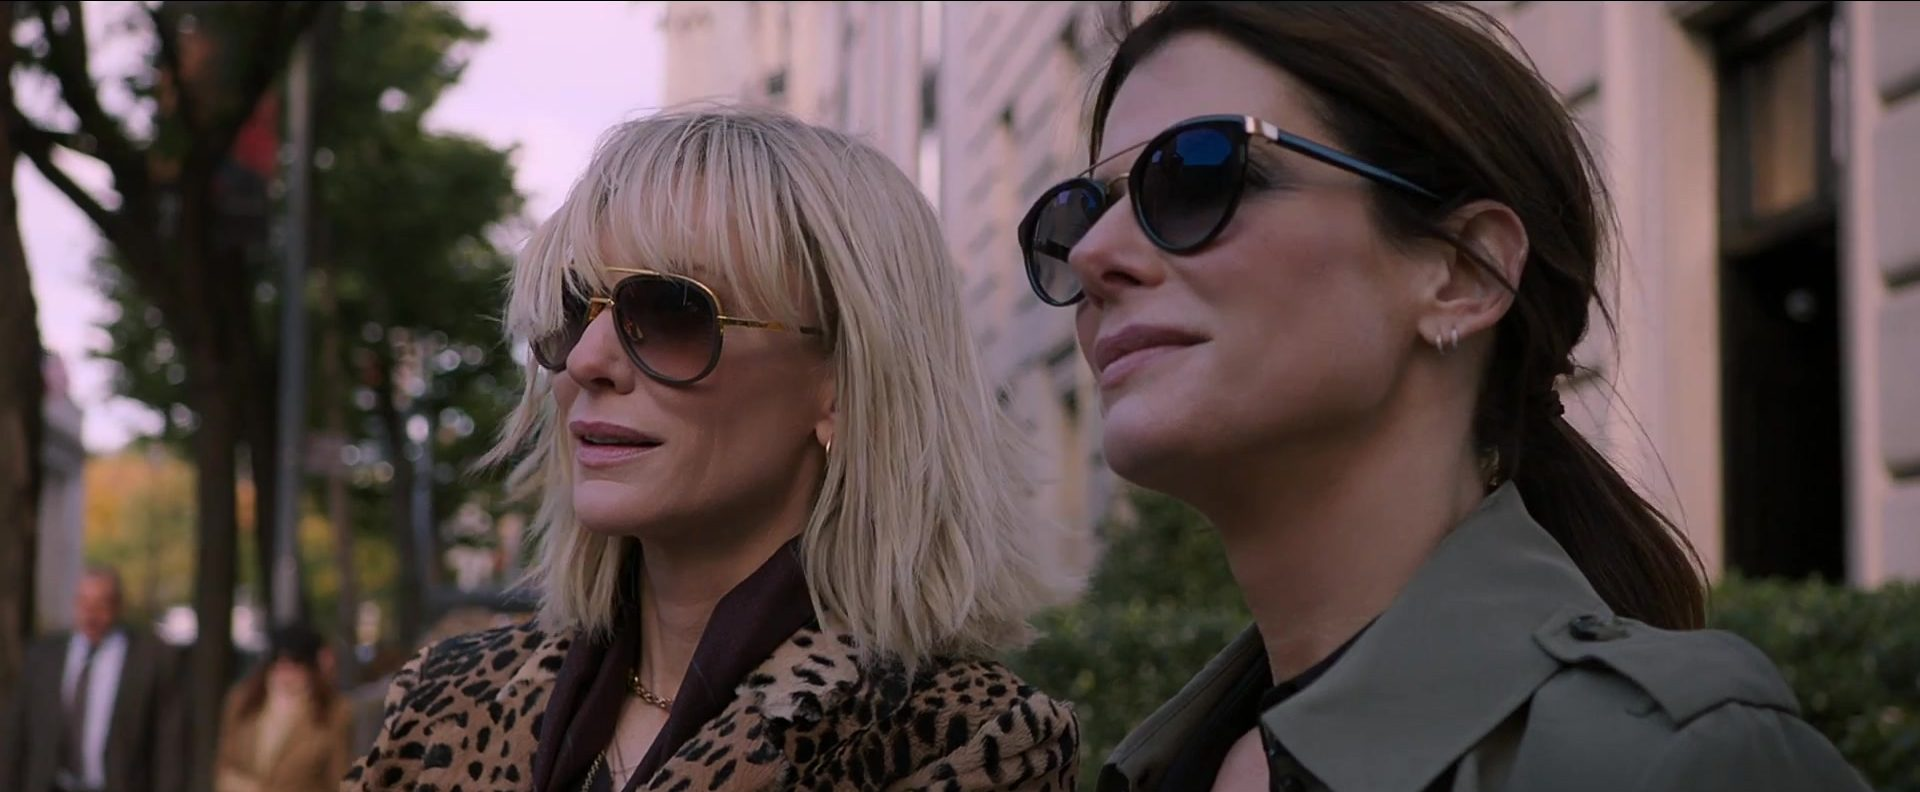 New trailer for Ocean's 8 starring Sandra Bullock and Cate Blanchett